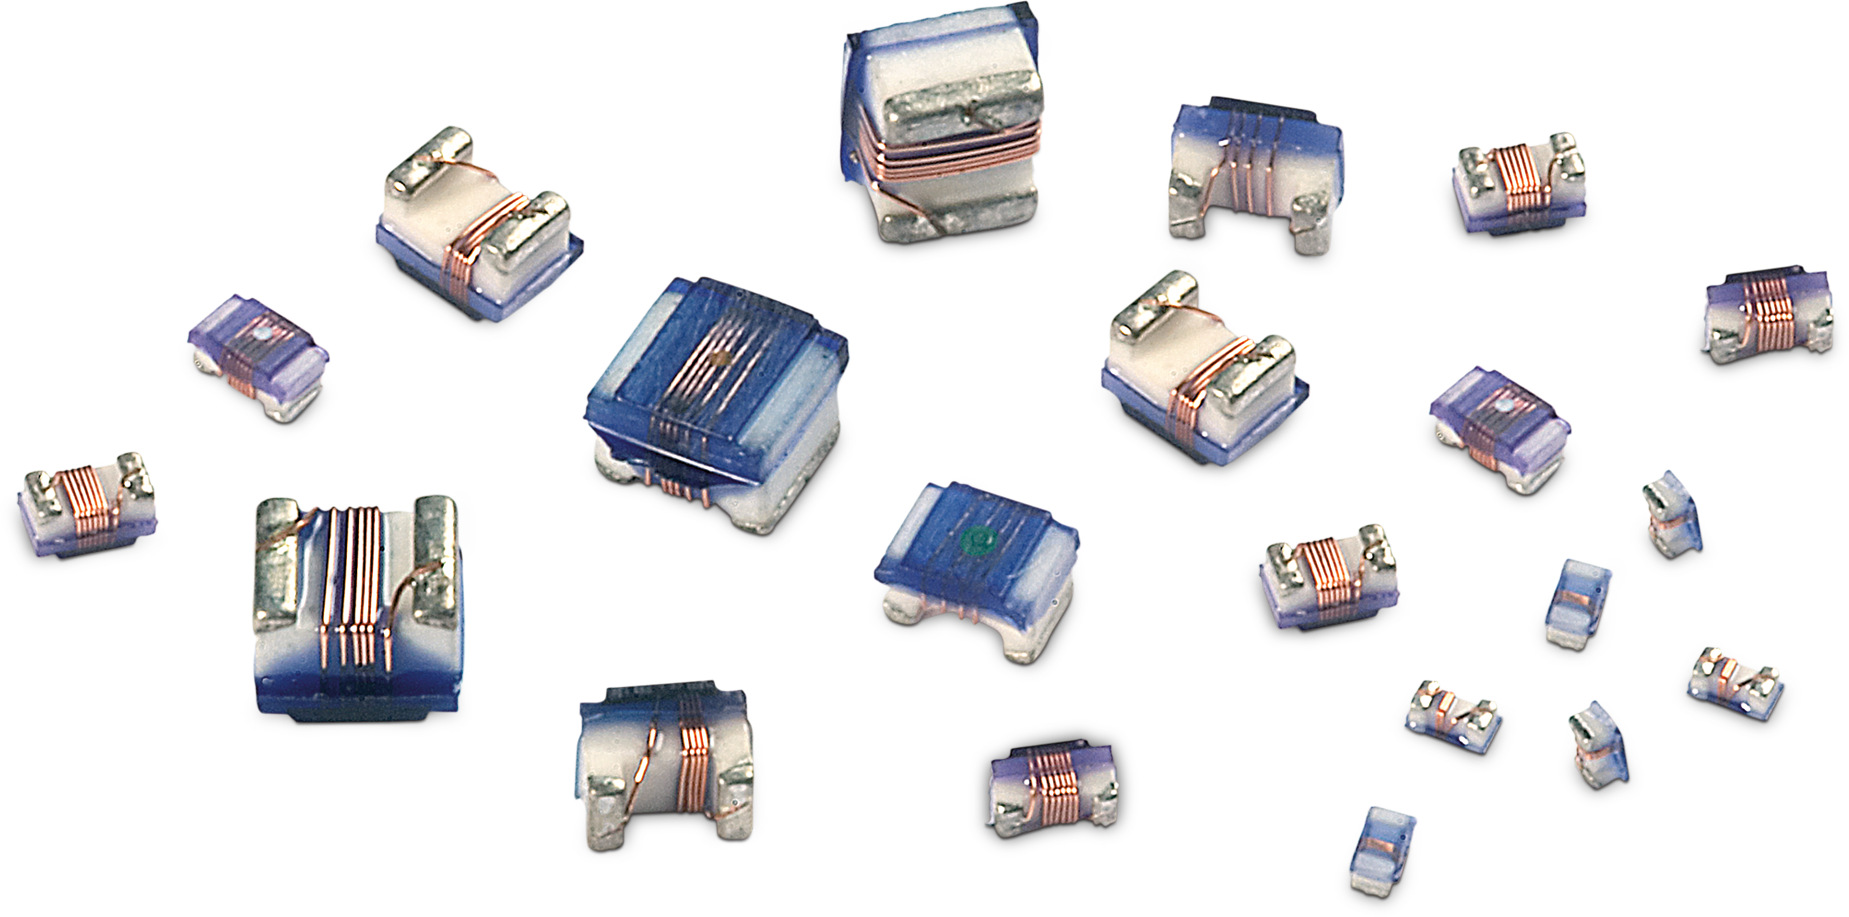 WE-KI SMD Wire Wound Ceramic Inductor Picture